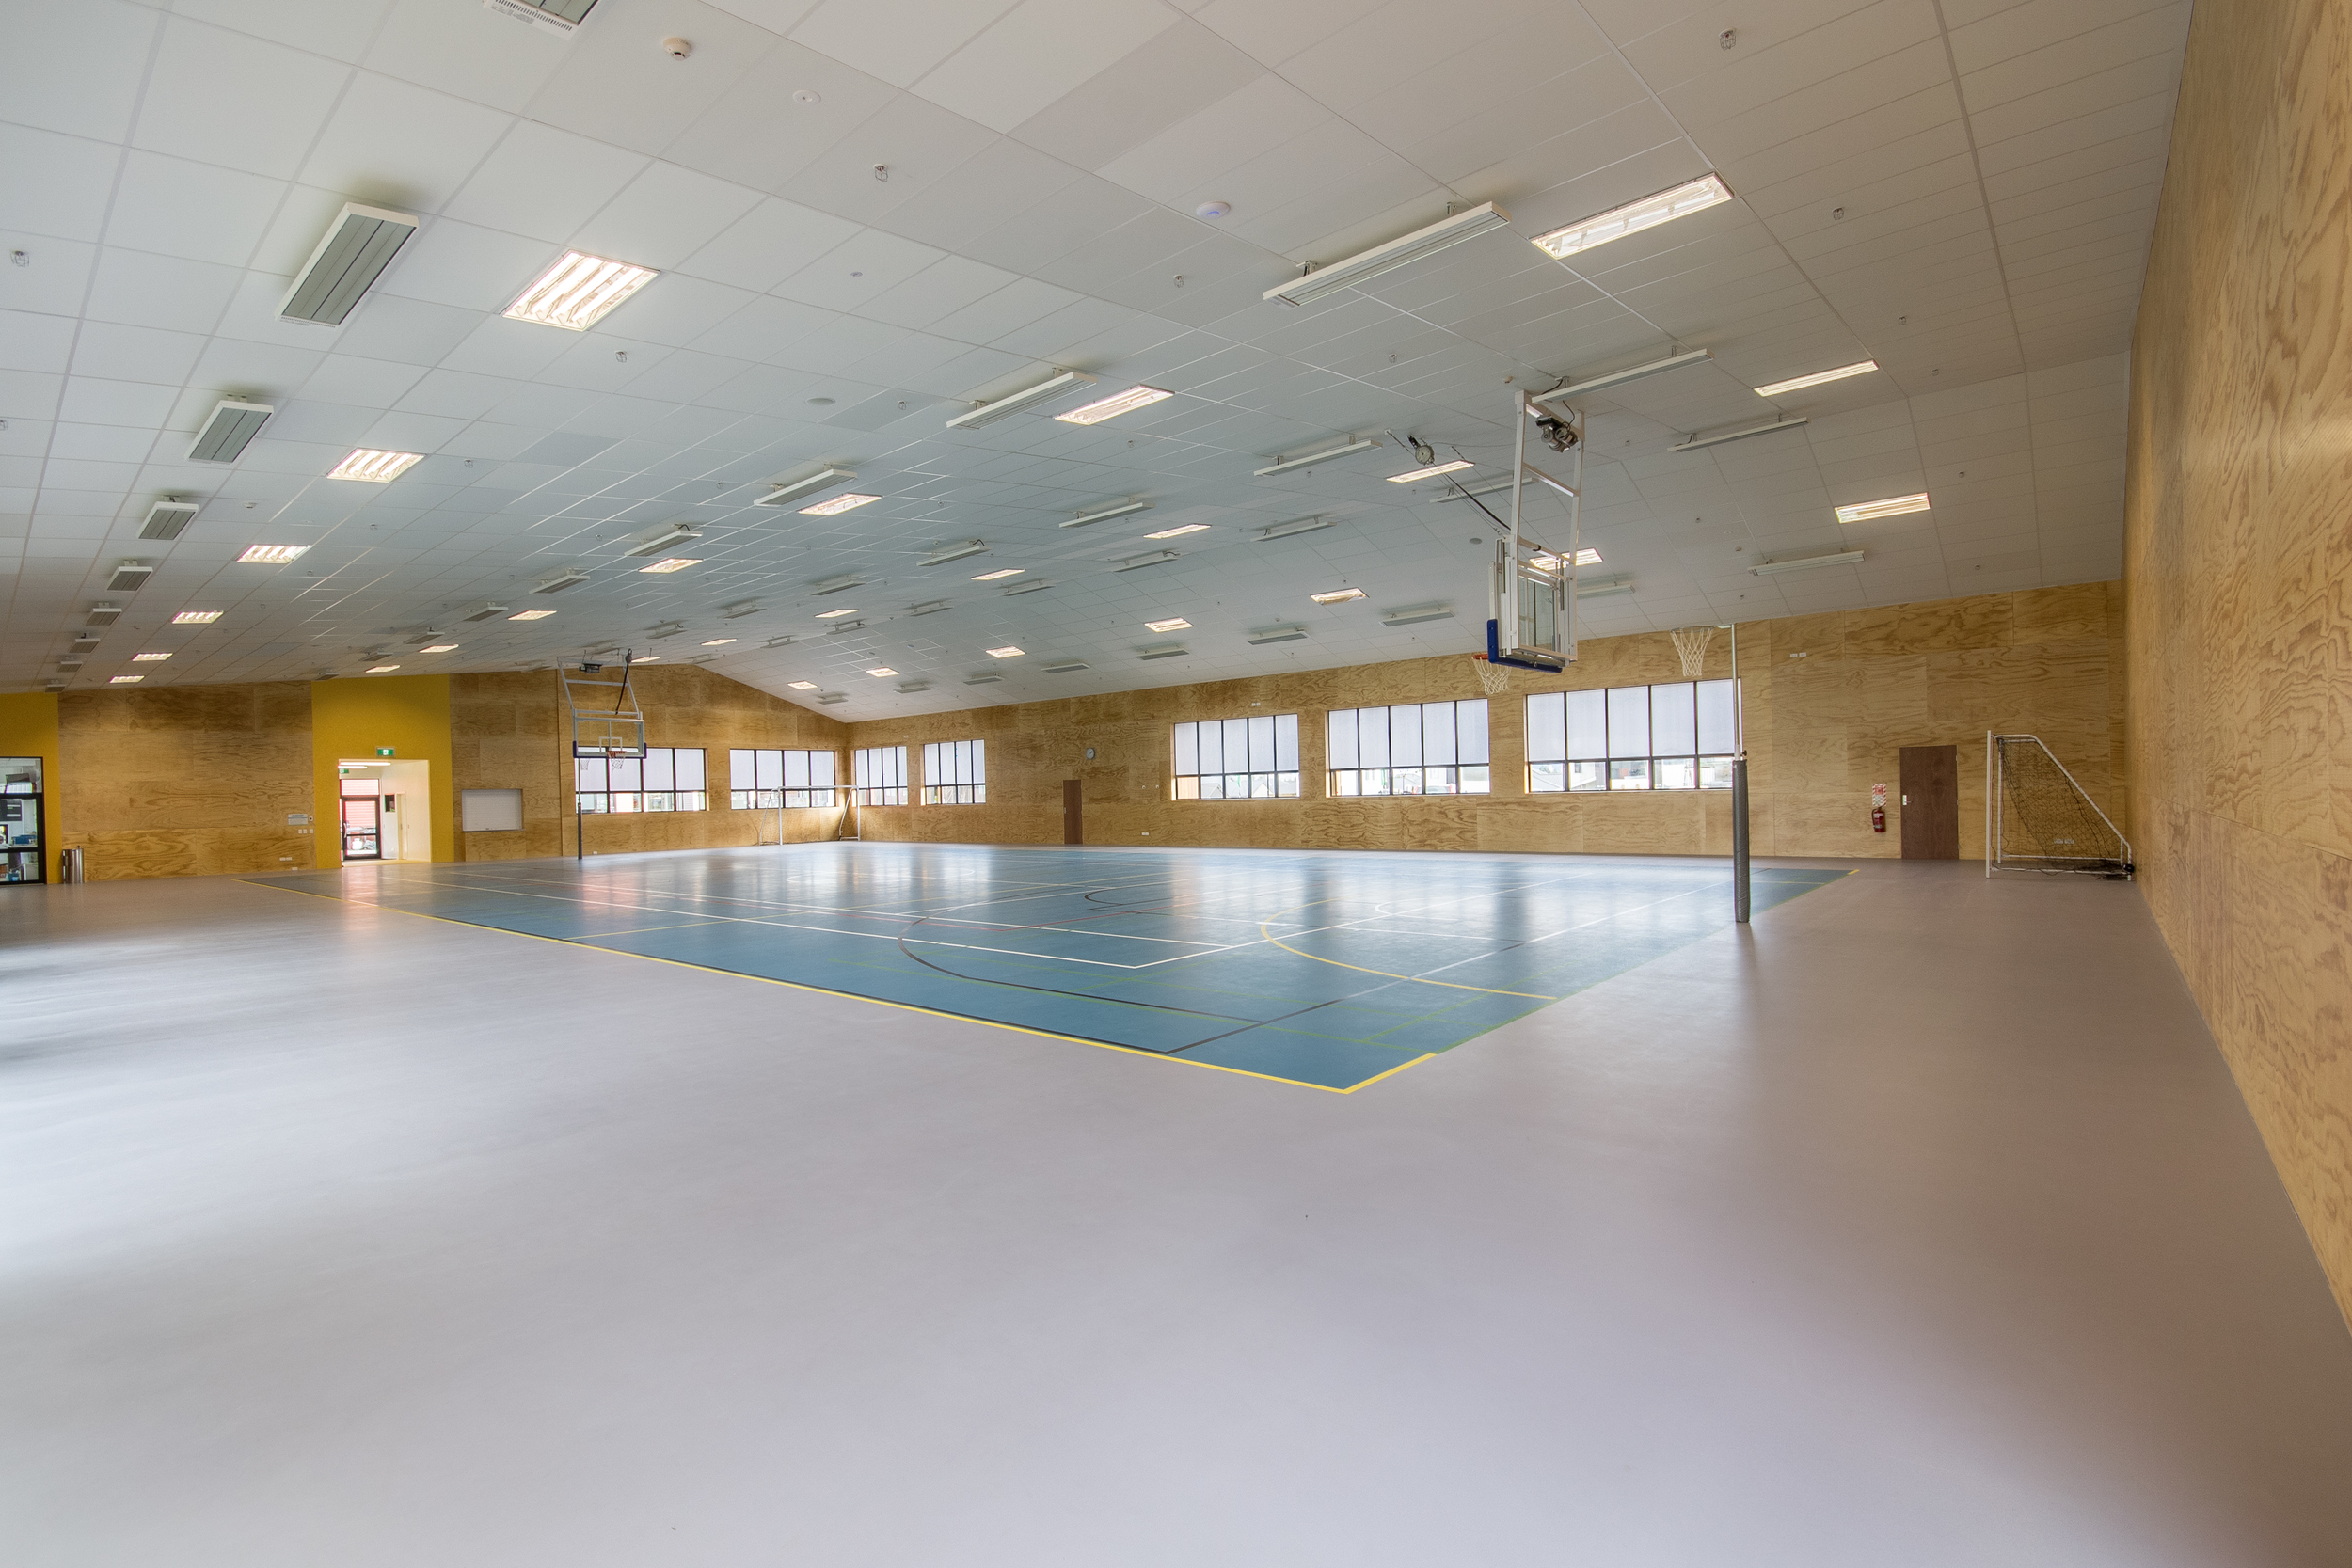 Shotover School Hall Interiors-9.jpg